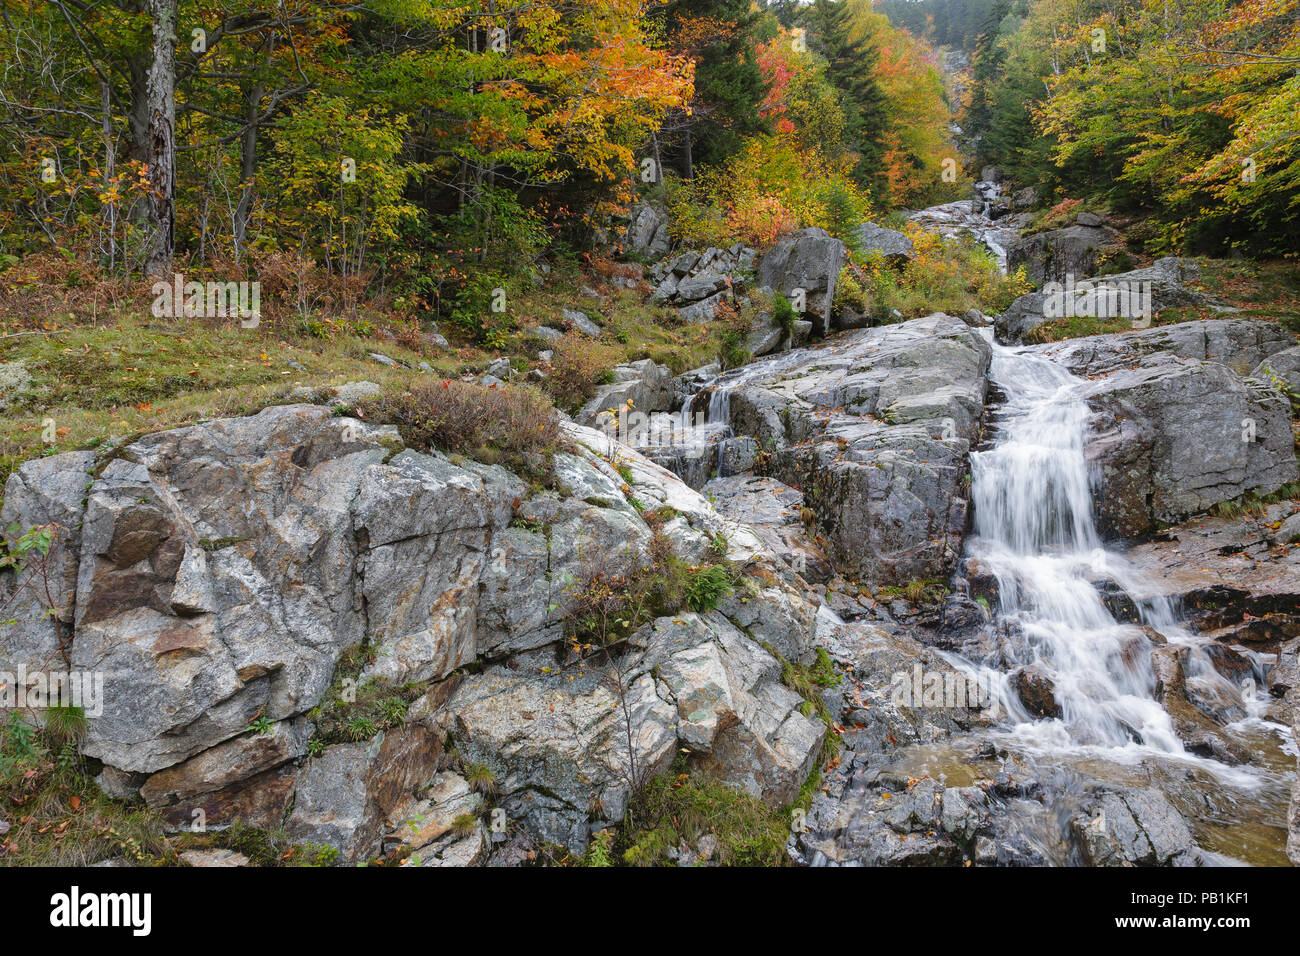 Flume Cascade in Hart's Location, New Hampshire during autumn months. This waterfall is roadside along Route 302 in Crawford Notch State Park. Stock Photo